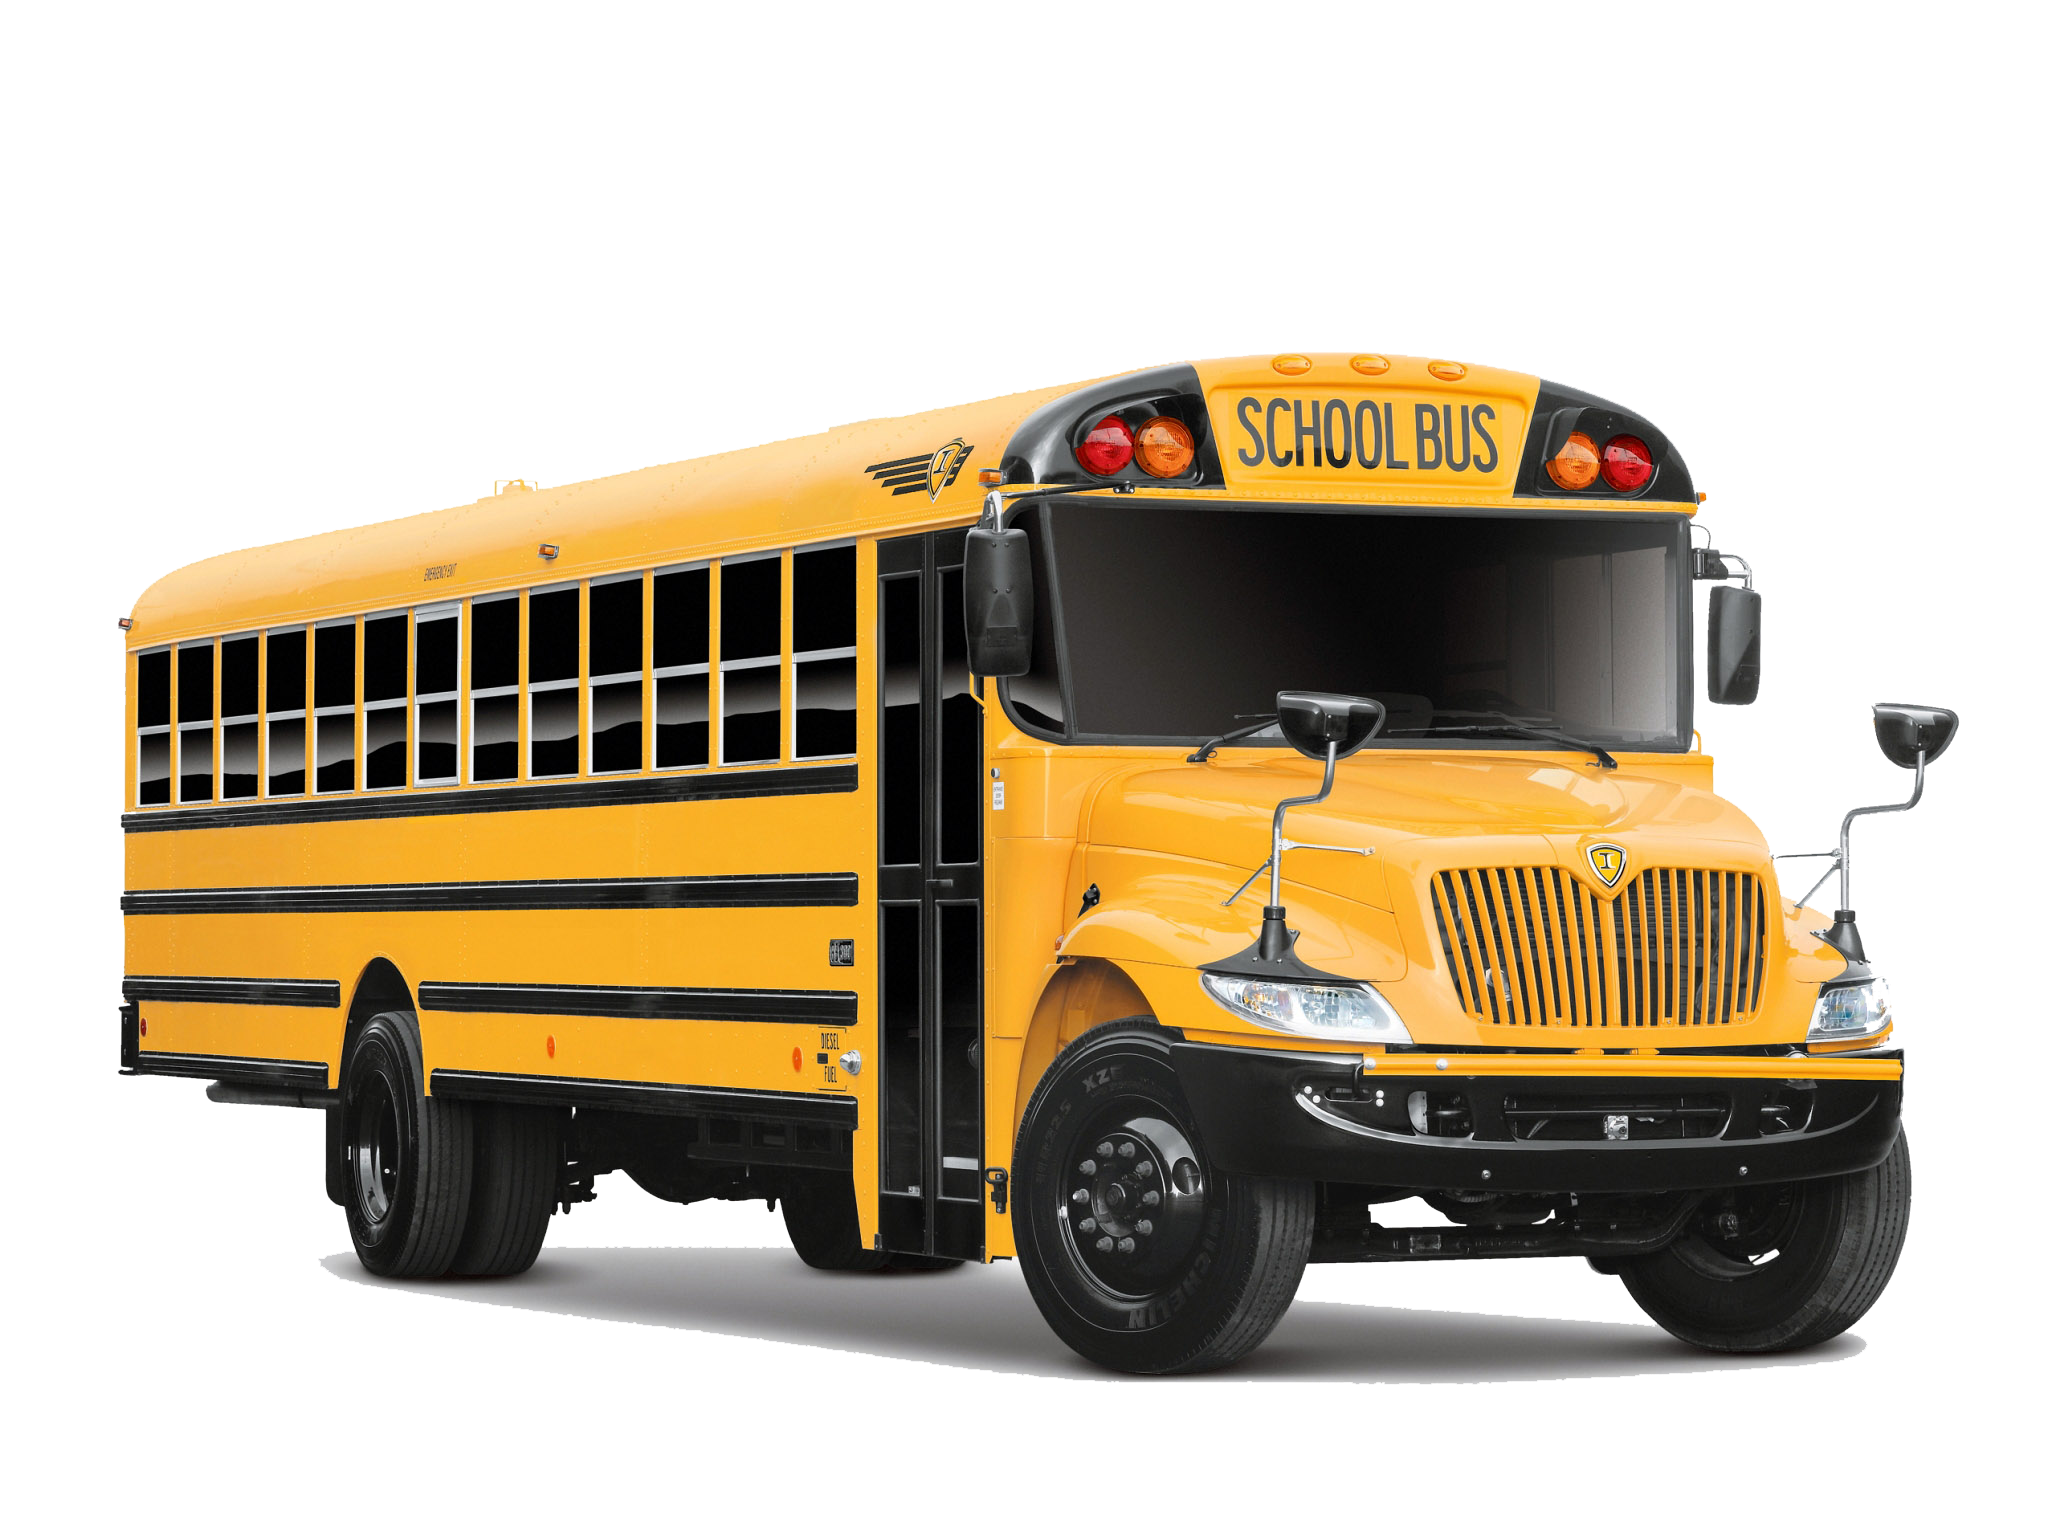 school-bus-png-hd-23